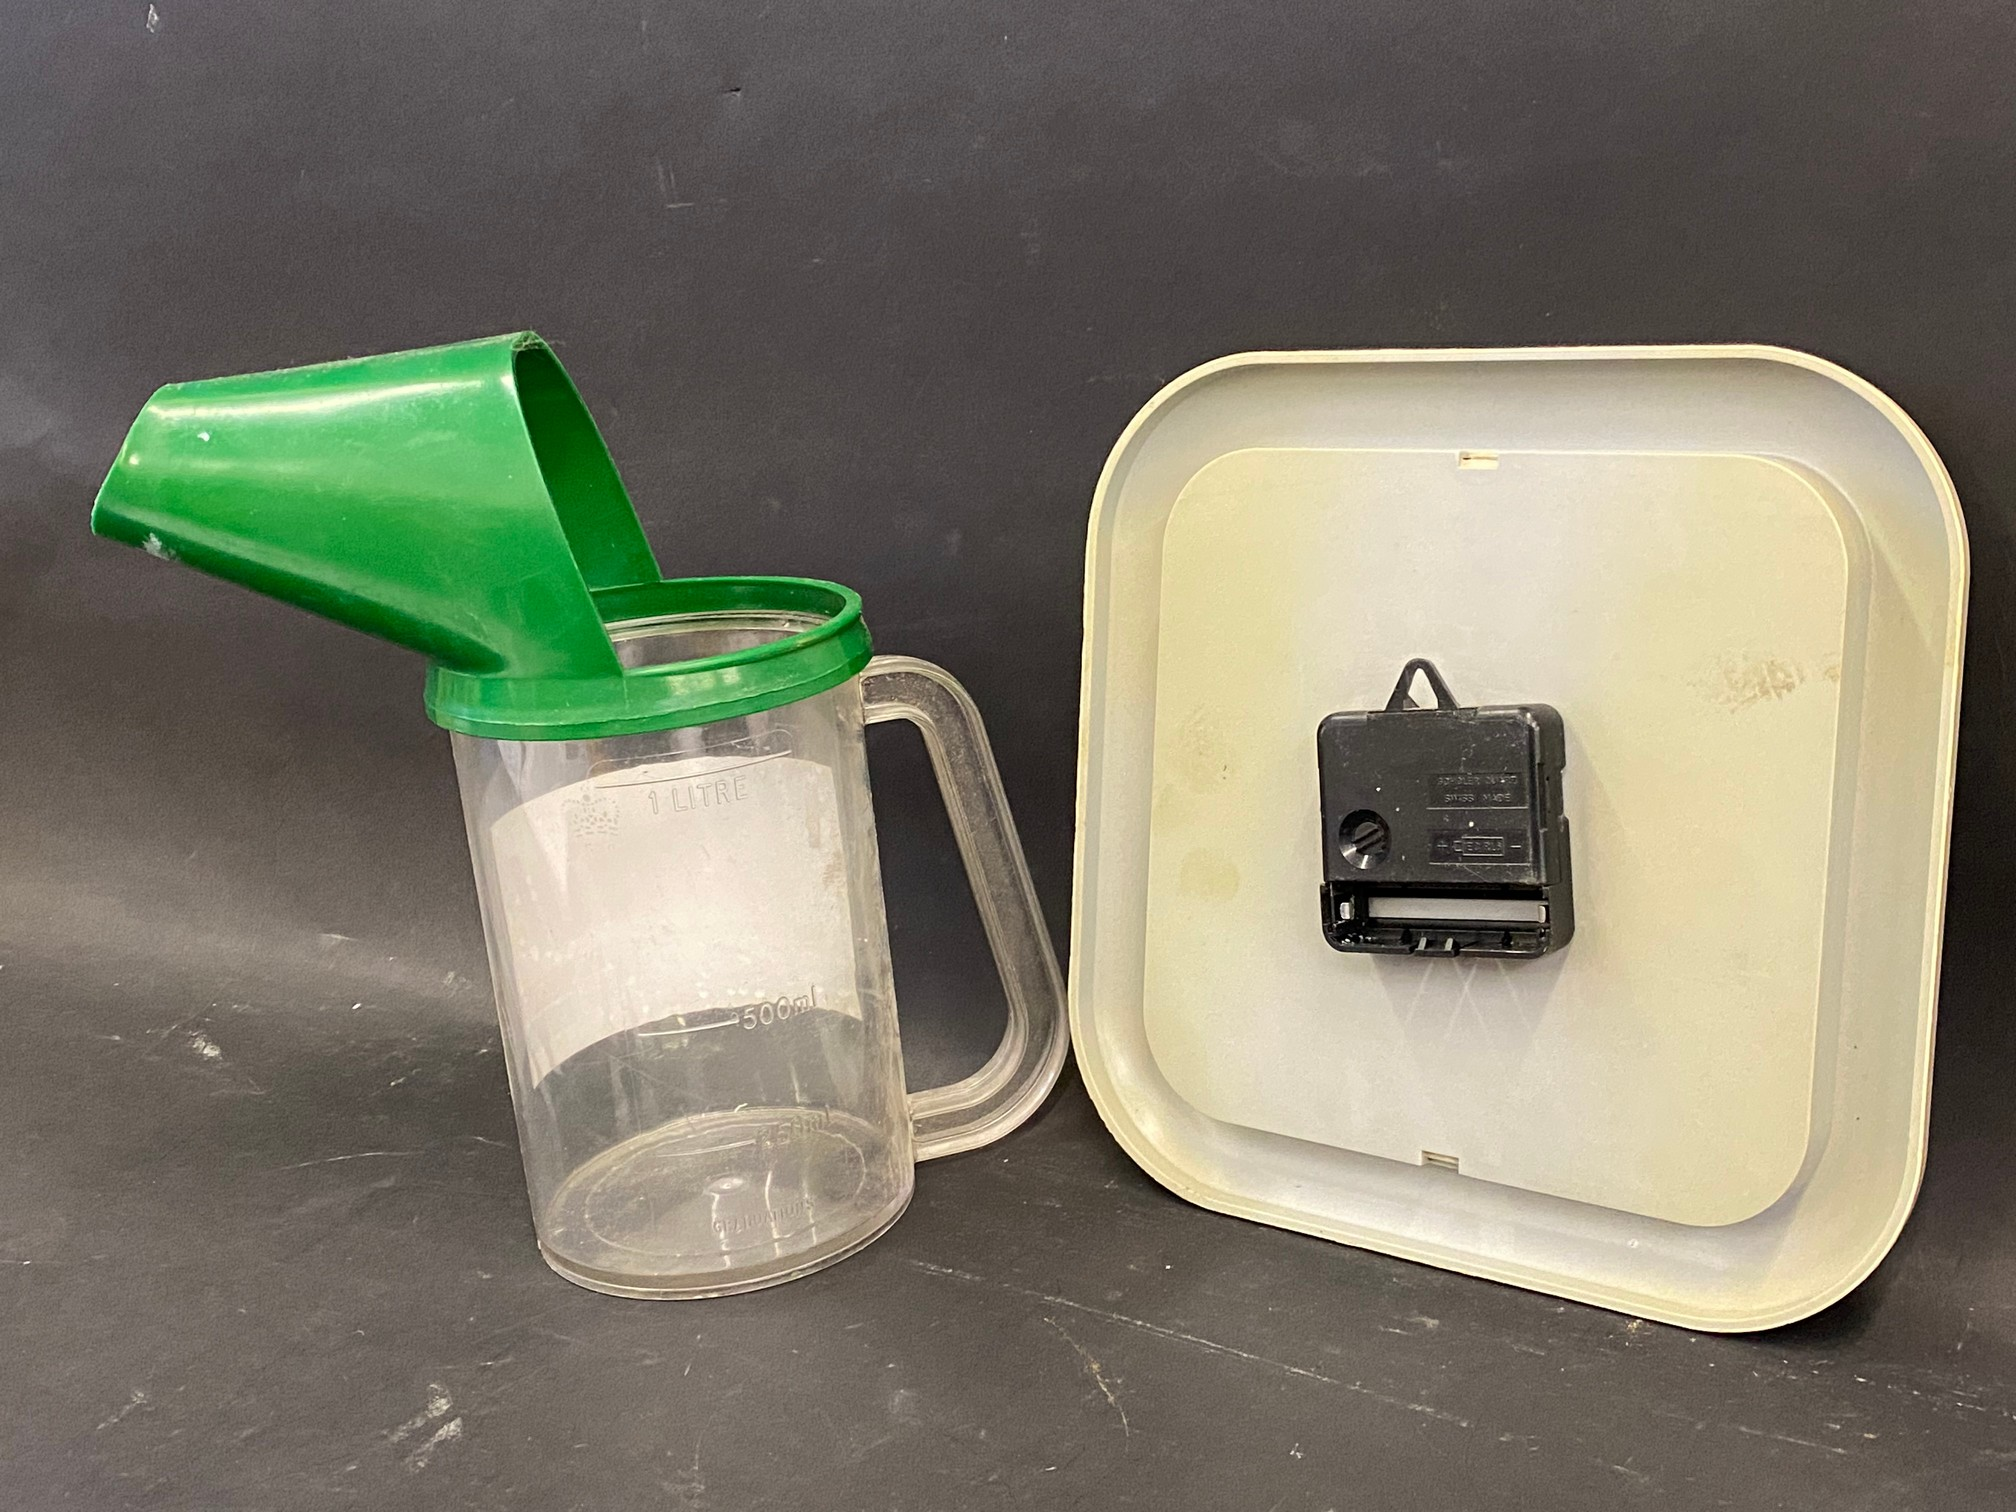 A Castrol one litre plastic measure and a Castrol TXT battery operated wall clock. - Image 2 of 2